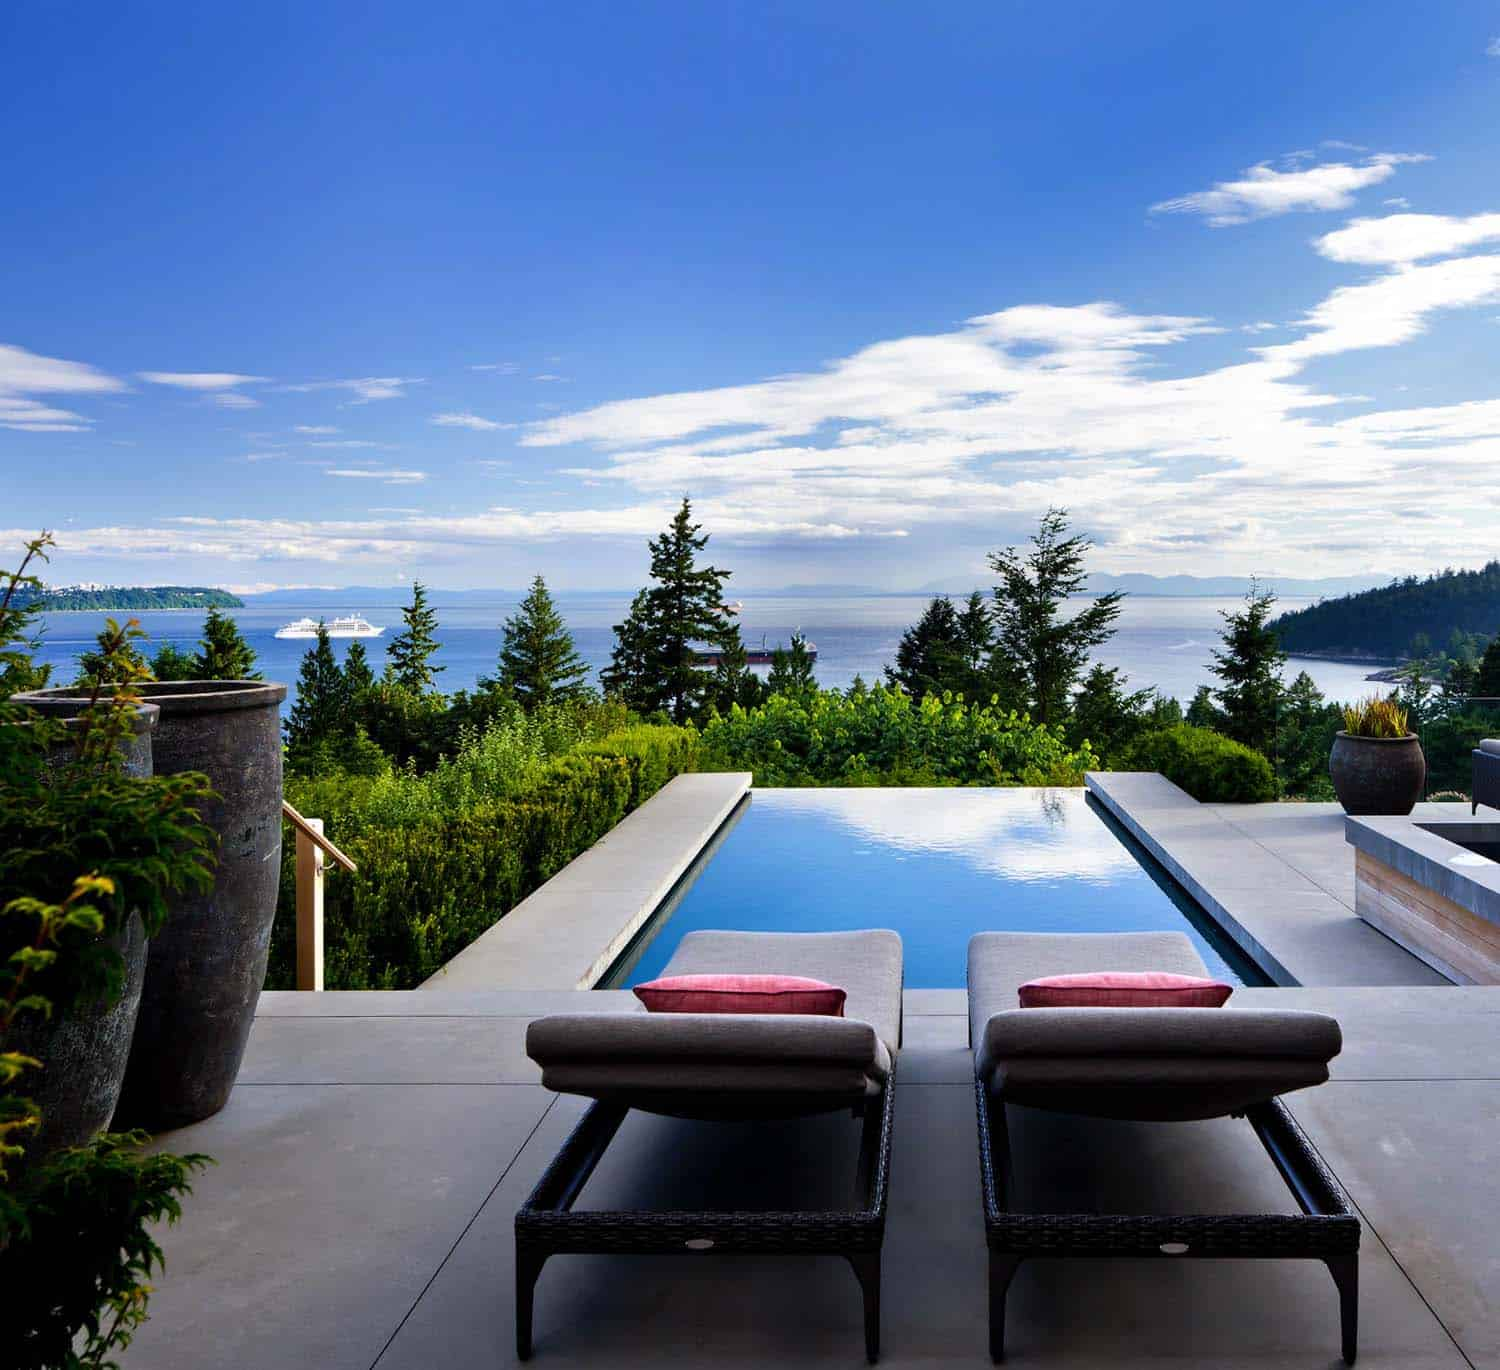 Infinity Edge Pool Ideas-14-1 Kindesign